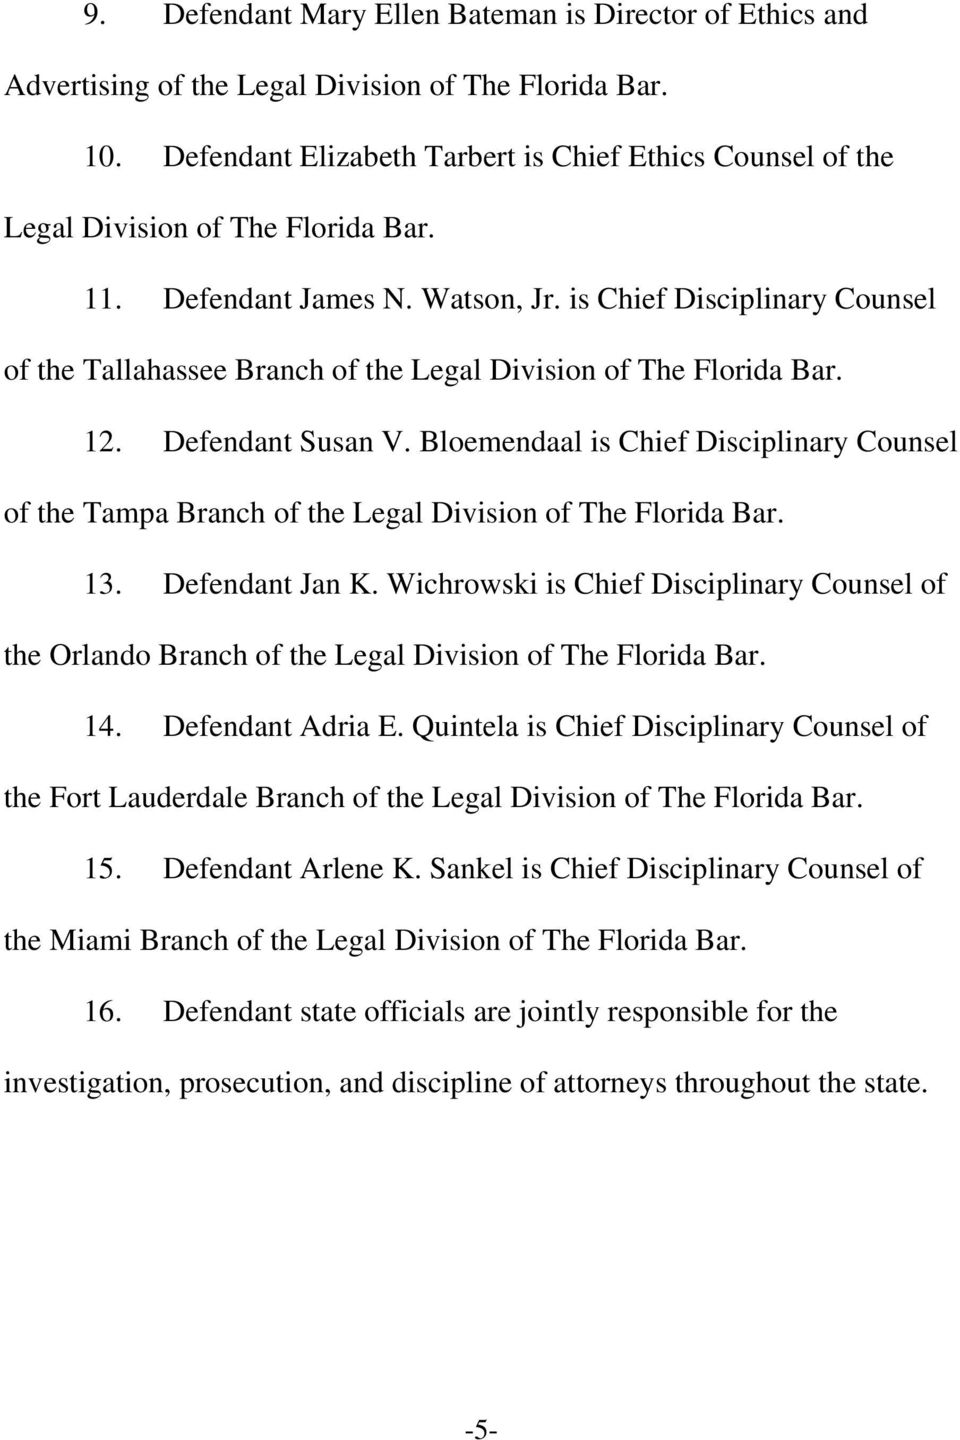 is Chief Disciplinary Counsel of the Tallahassee Branch of the Legal Division of The Florida Bar. 12. Defendant Susan V.